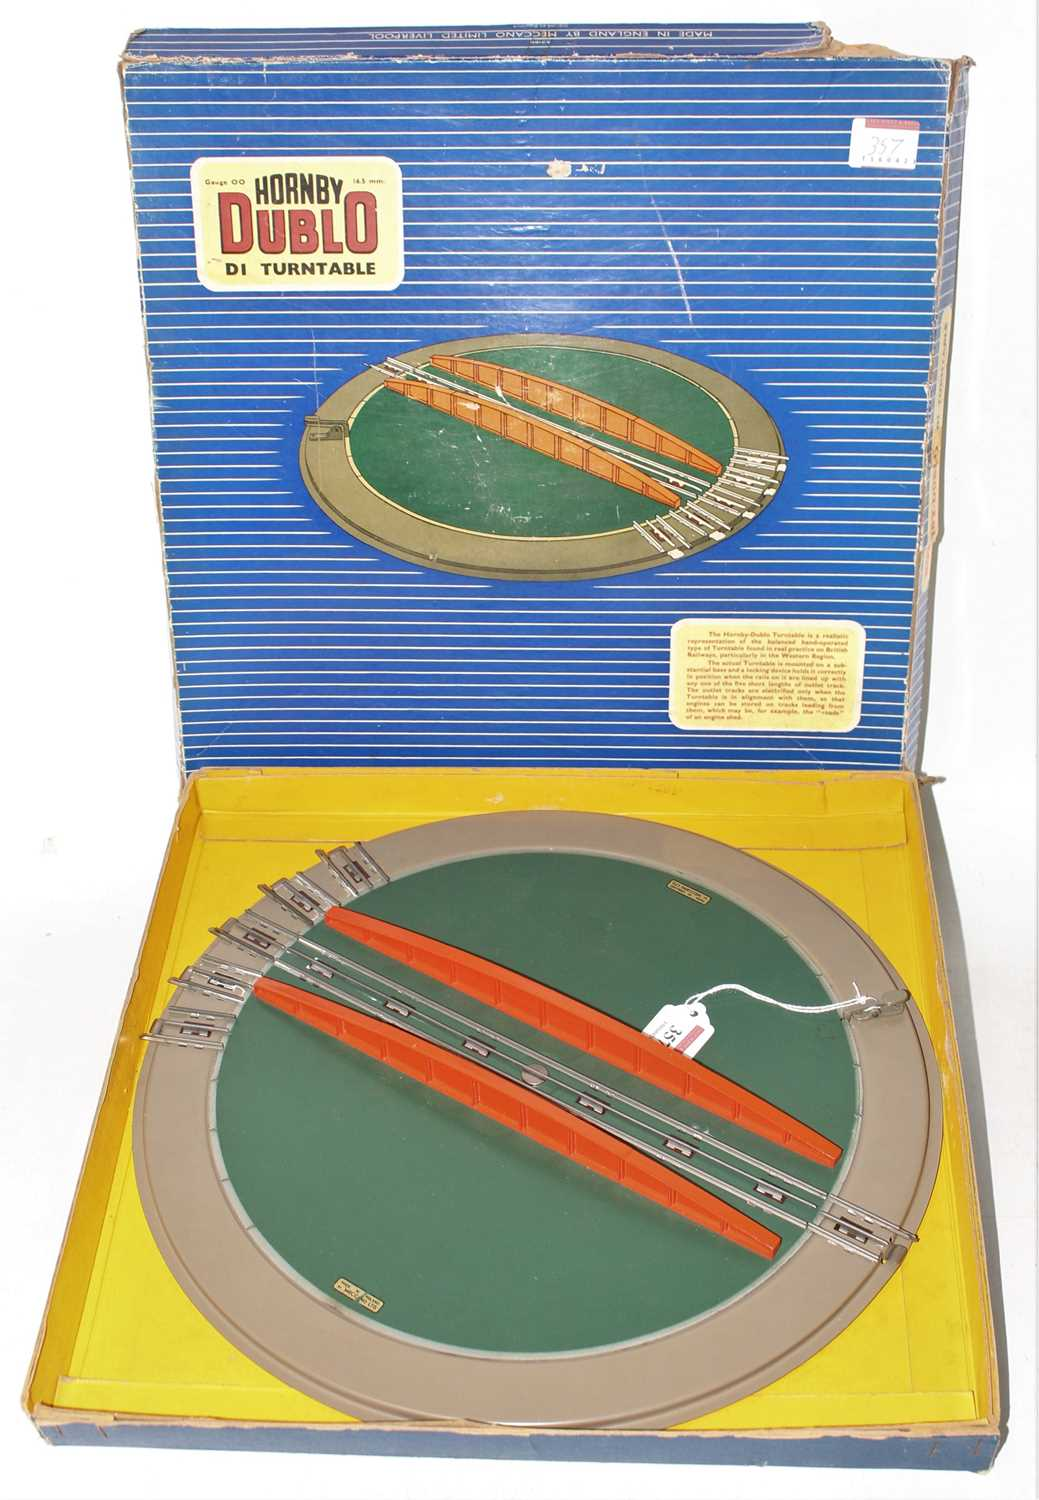 Hornby Dublo D1 Turntable, very clean (VG-BF)